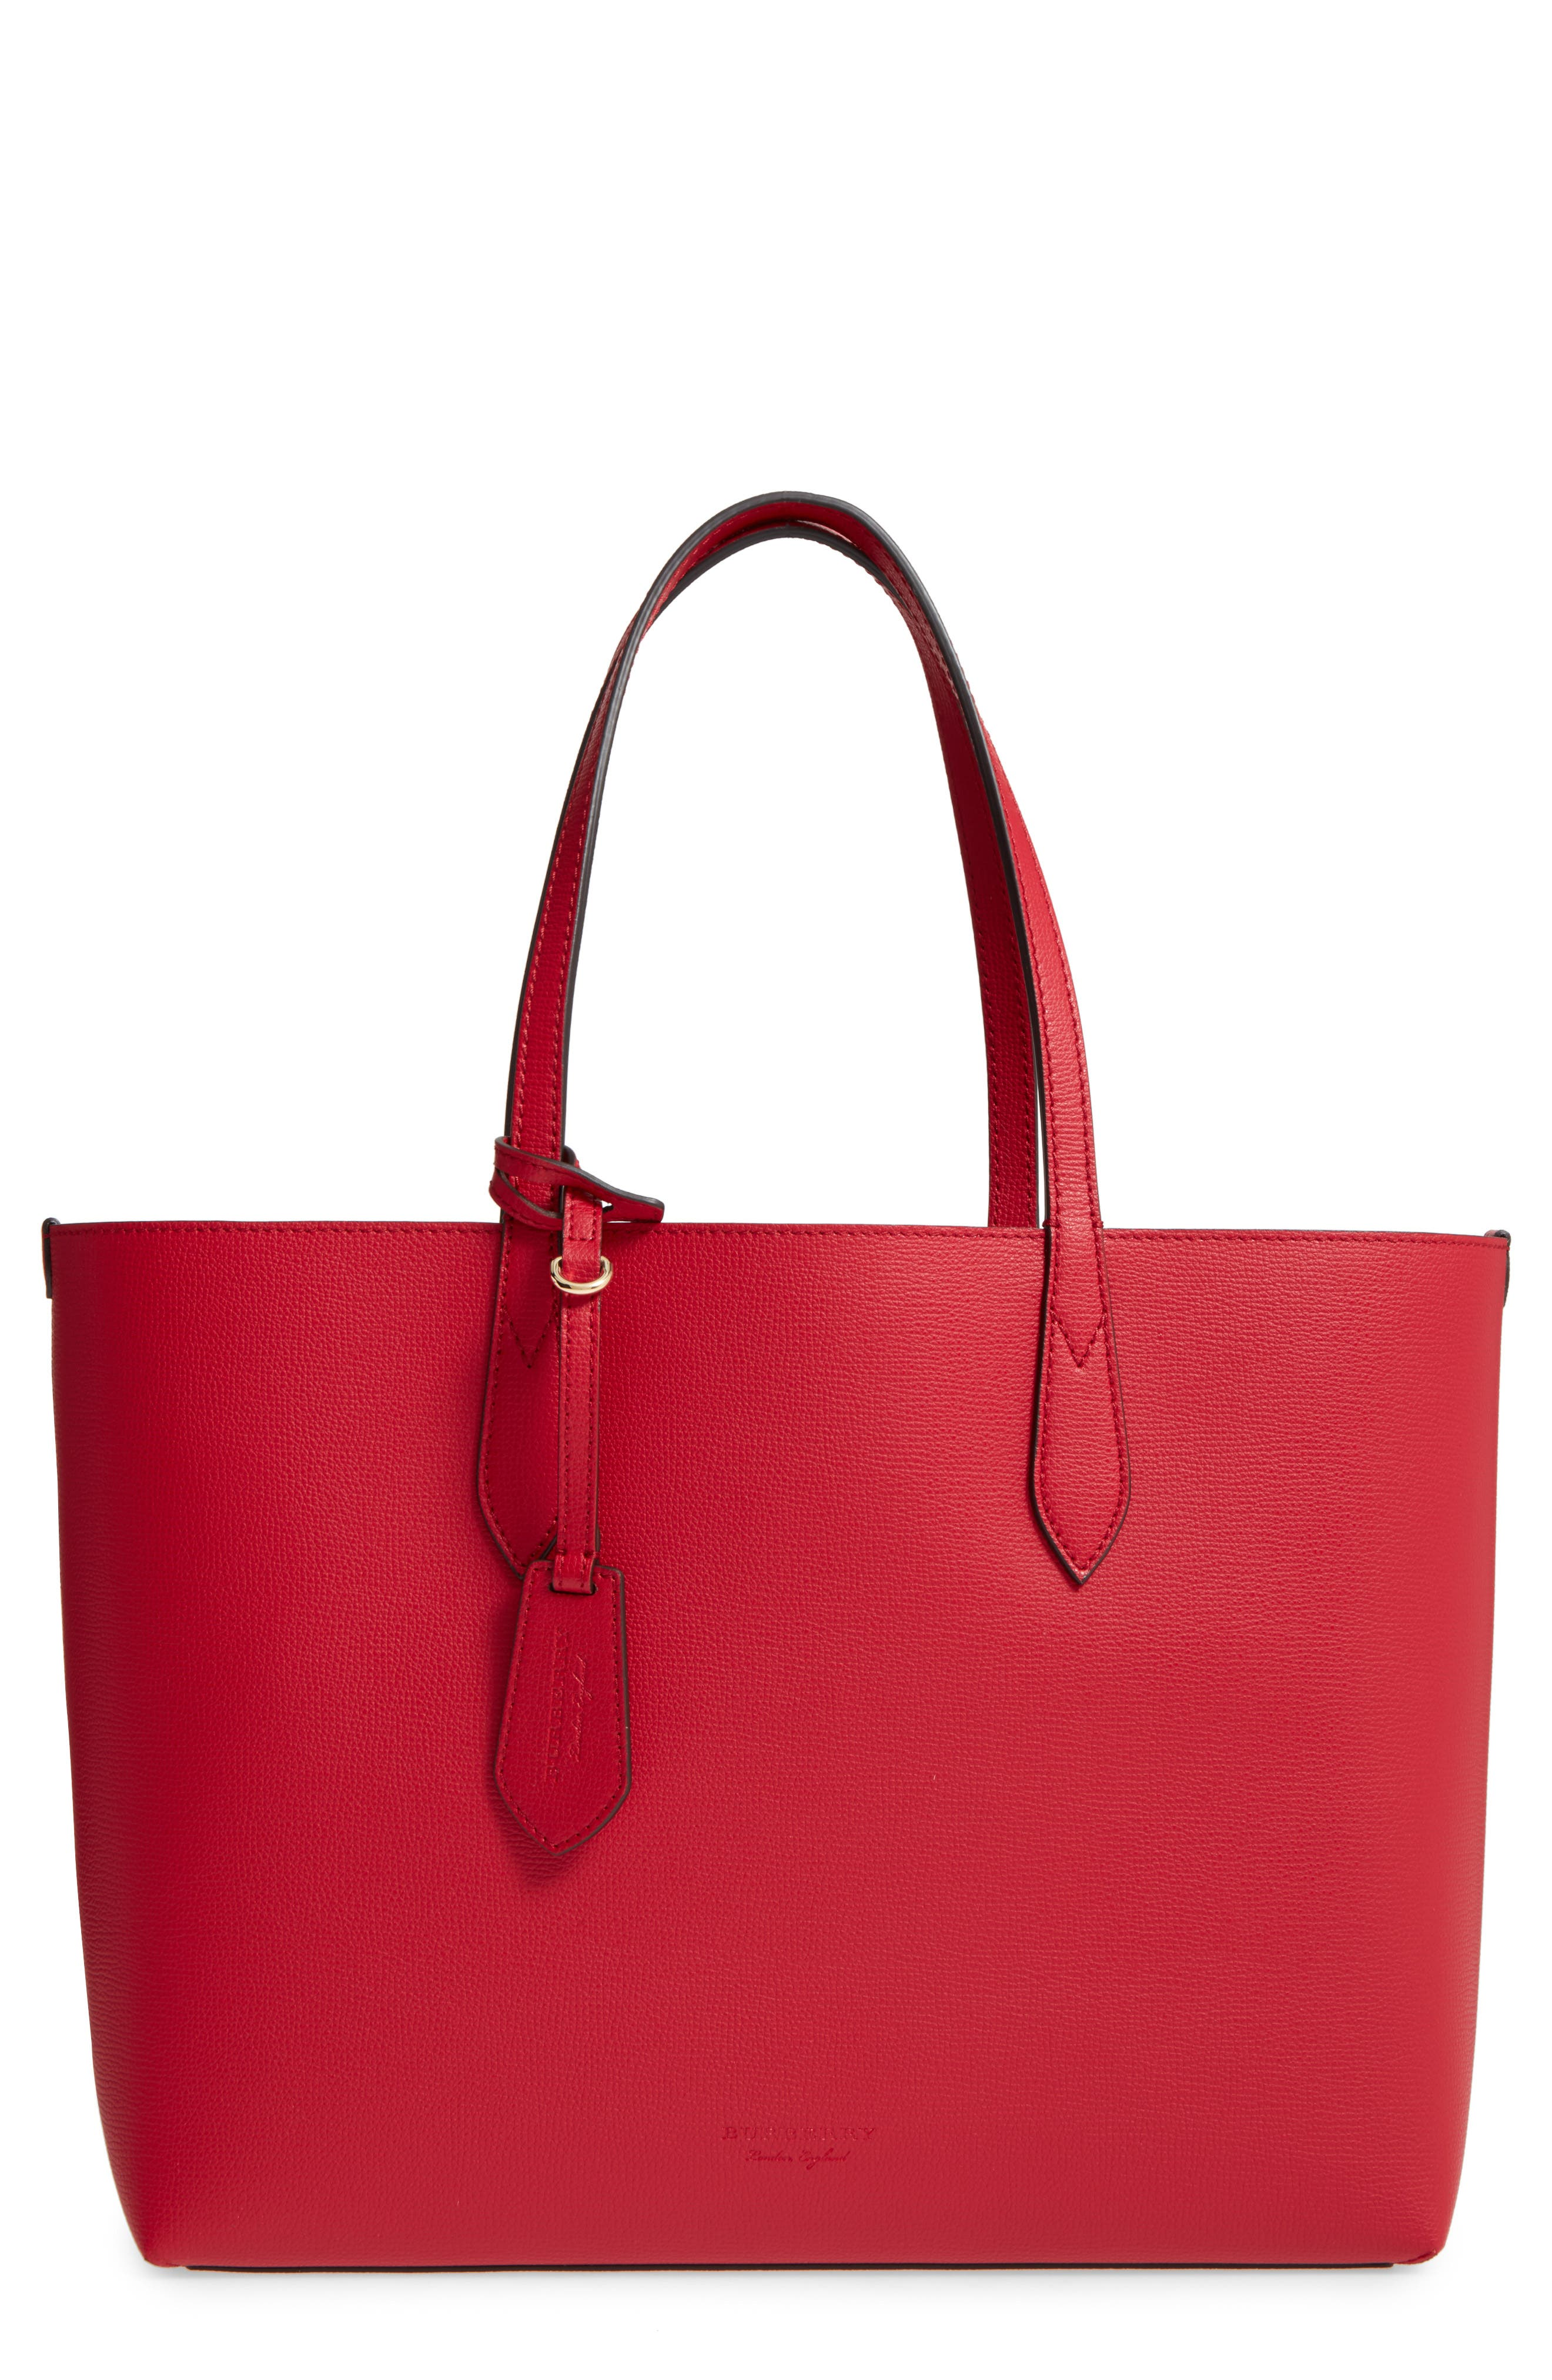 Reversible Leather Tote,                             Main thumbnail 1, color,                             613